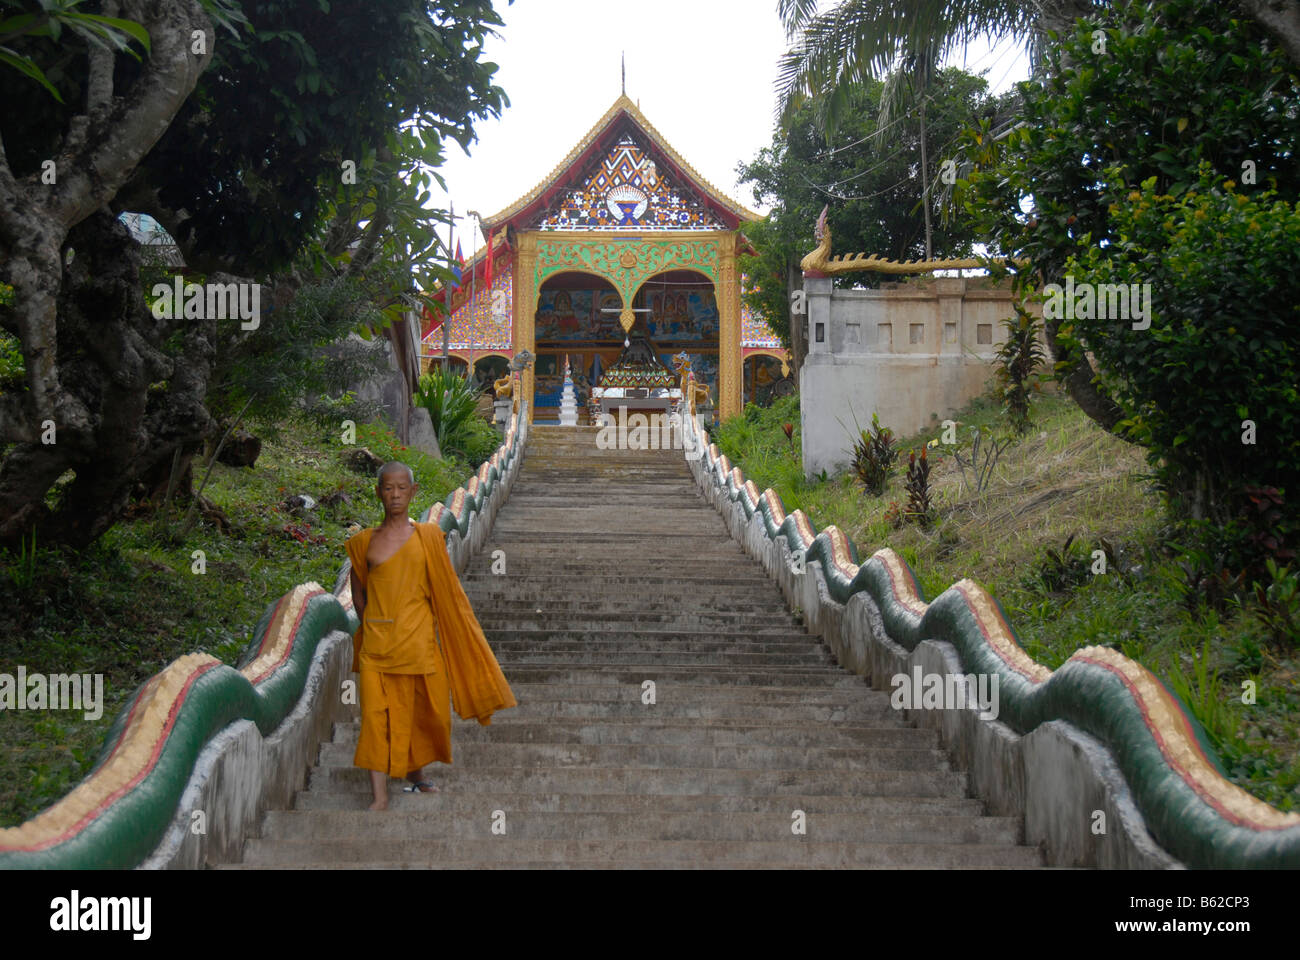 Buddhist monk on the long steps leading to the Wat Jom Khao Manilat temple in Houay Xai, Bokeo Province, Laos, South - Stock Image